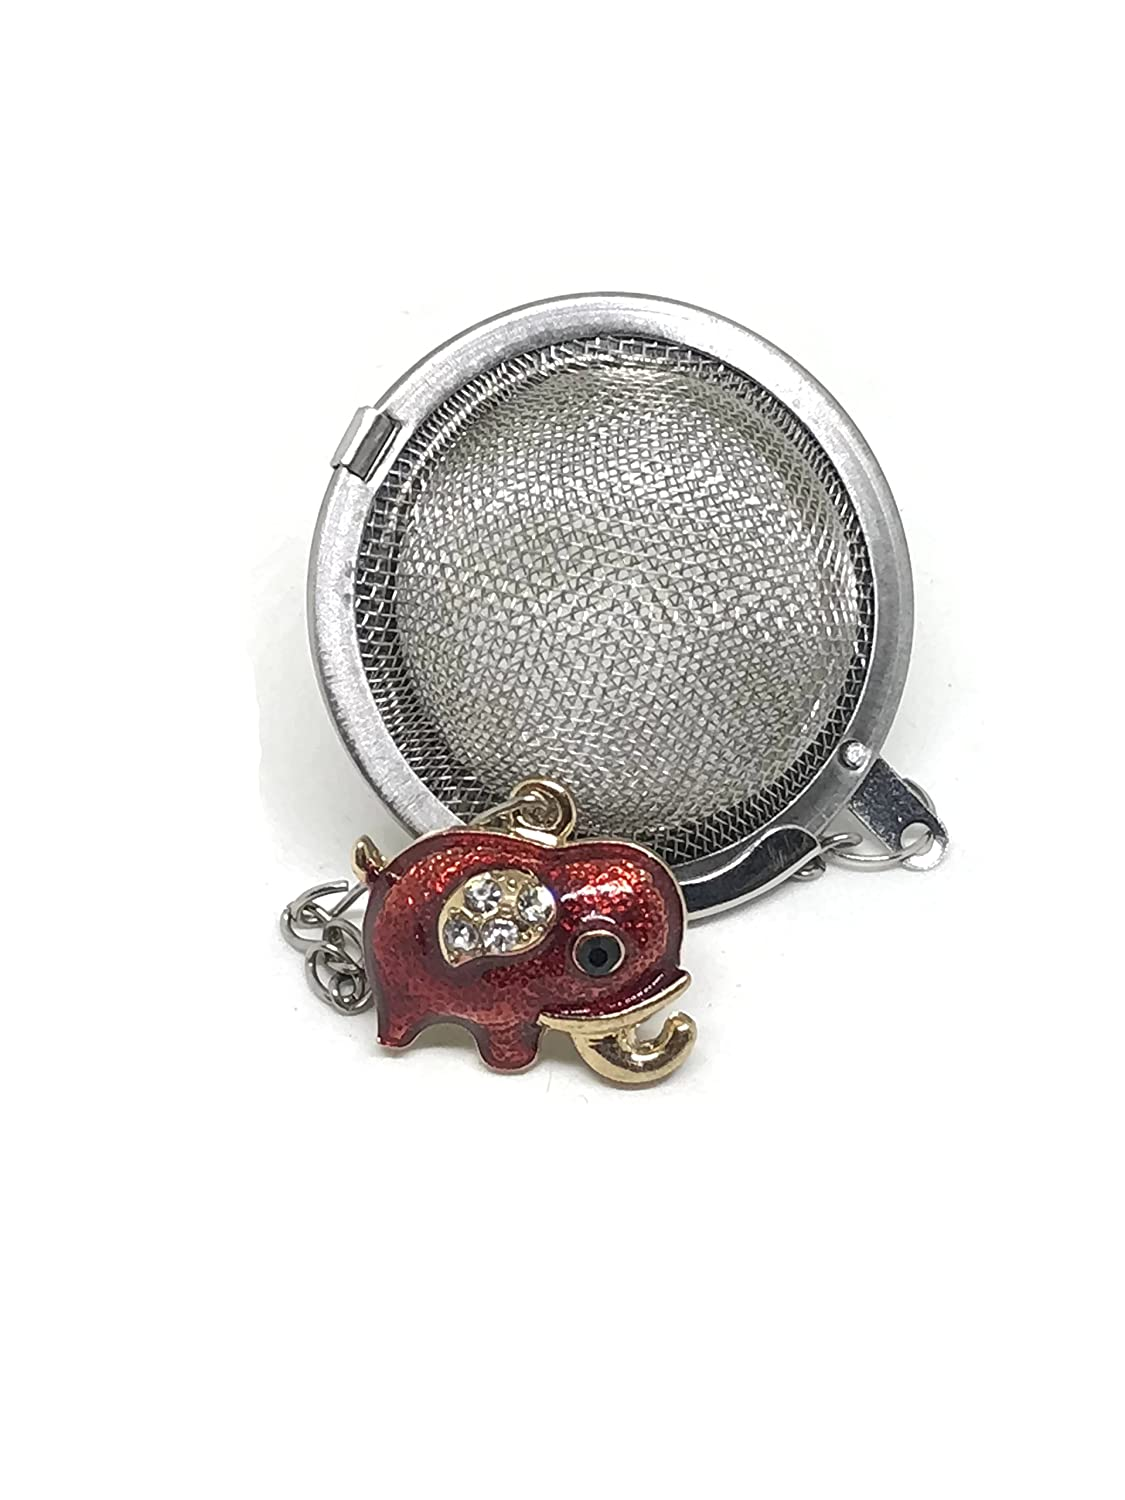 Tea Infuser Ball Light Gold with Red Enamel and Rhinestones Elephant Weight Handmade